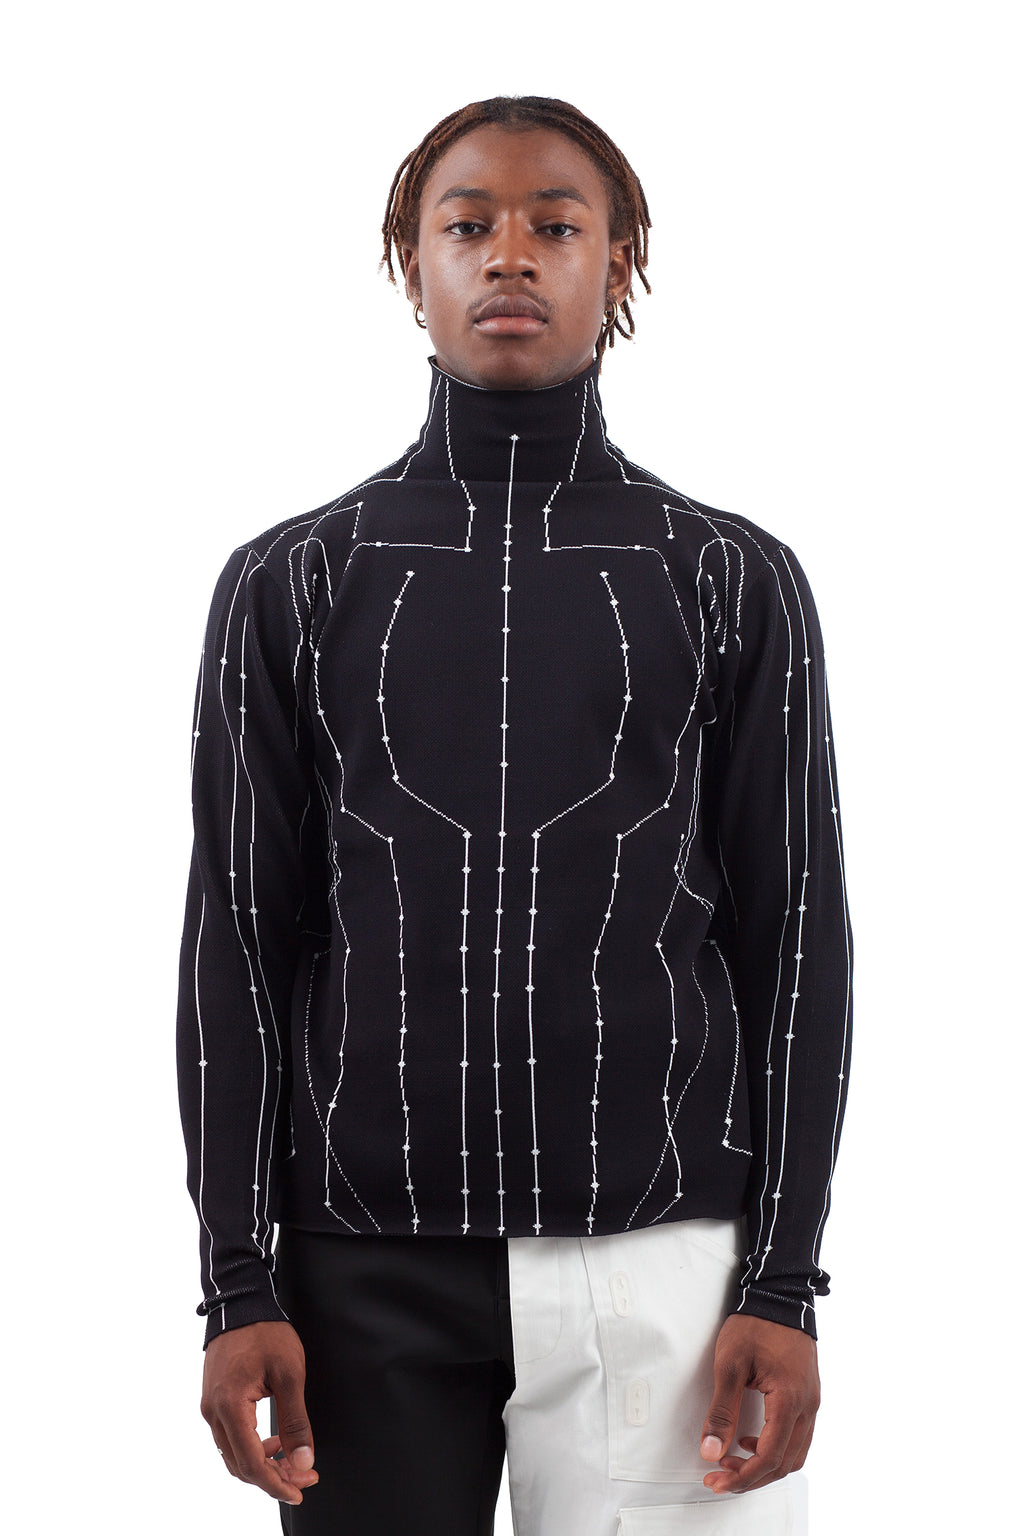 Chip Turtleneck - Black